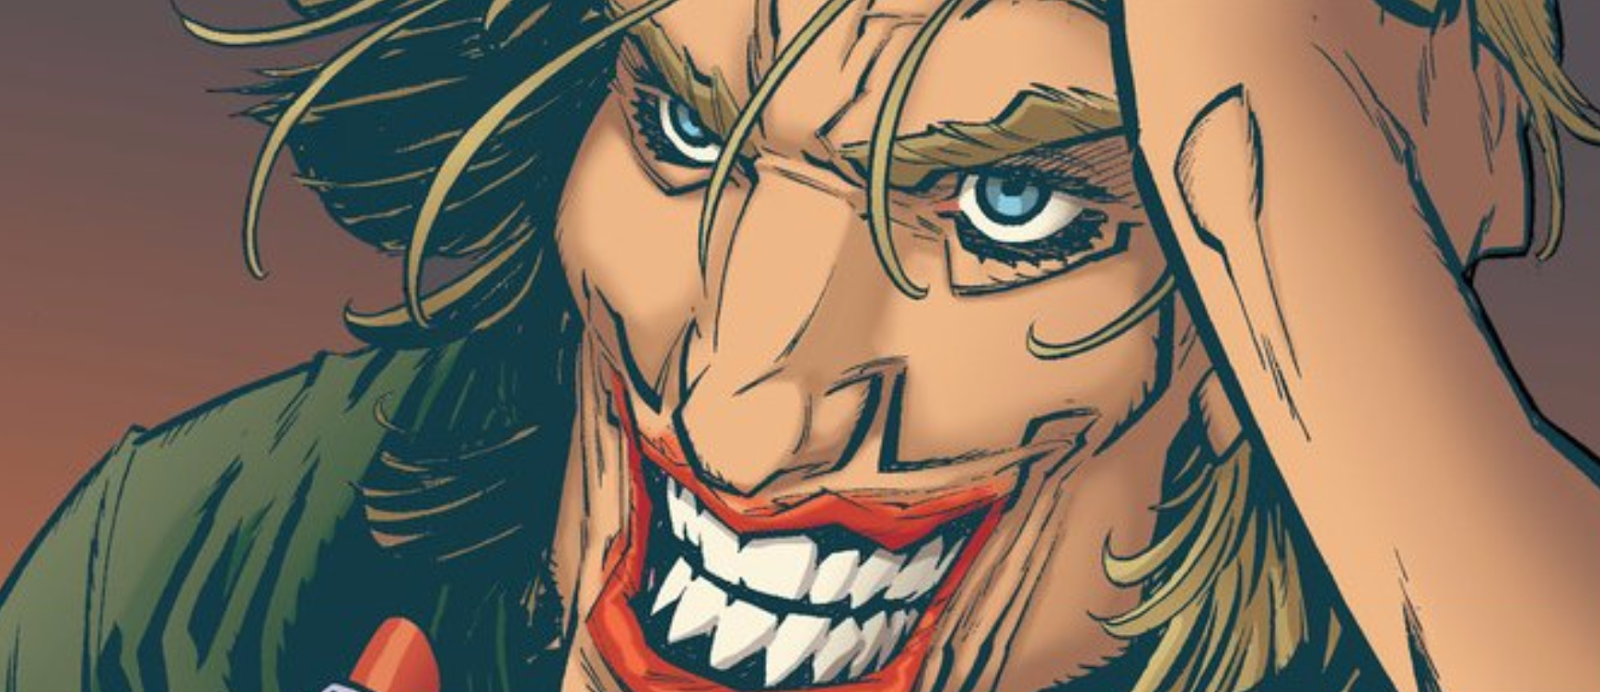 Gotham City's Newest Joker Is an 18-Year-Old Kid